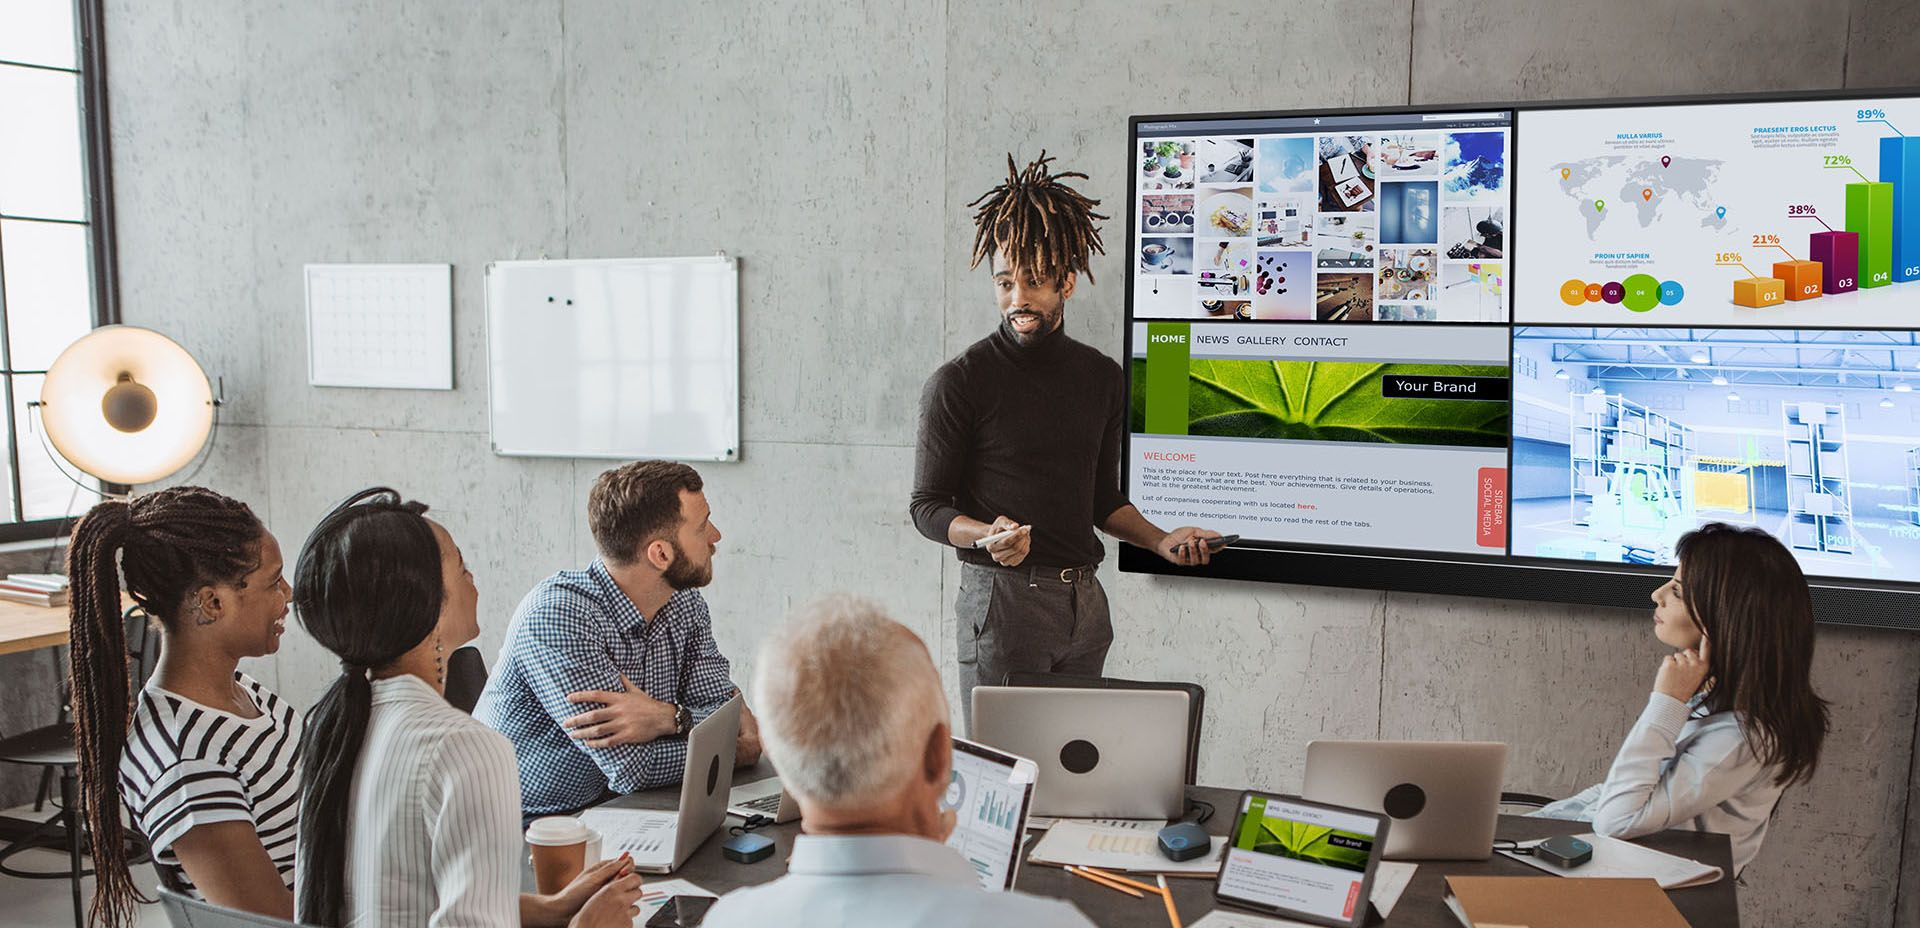 InstaShow makes it possible to use one monitor to share / present multiple ideas at the same time. It's especially suitable for brainstorming and group discussions.